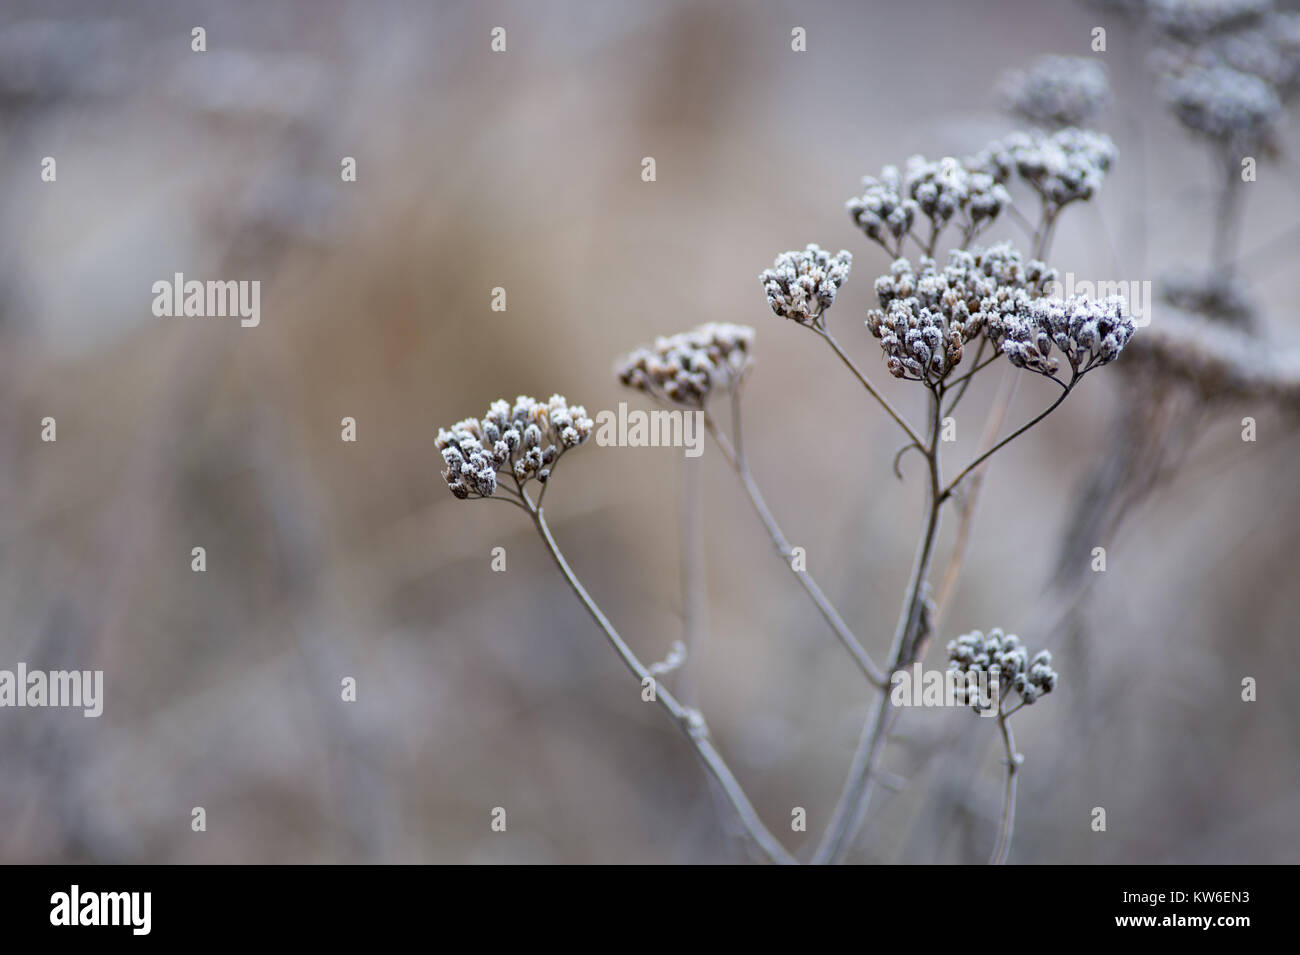 Winter seed headin a wintry Swedish forest. Stock Photo